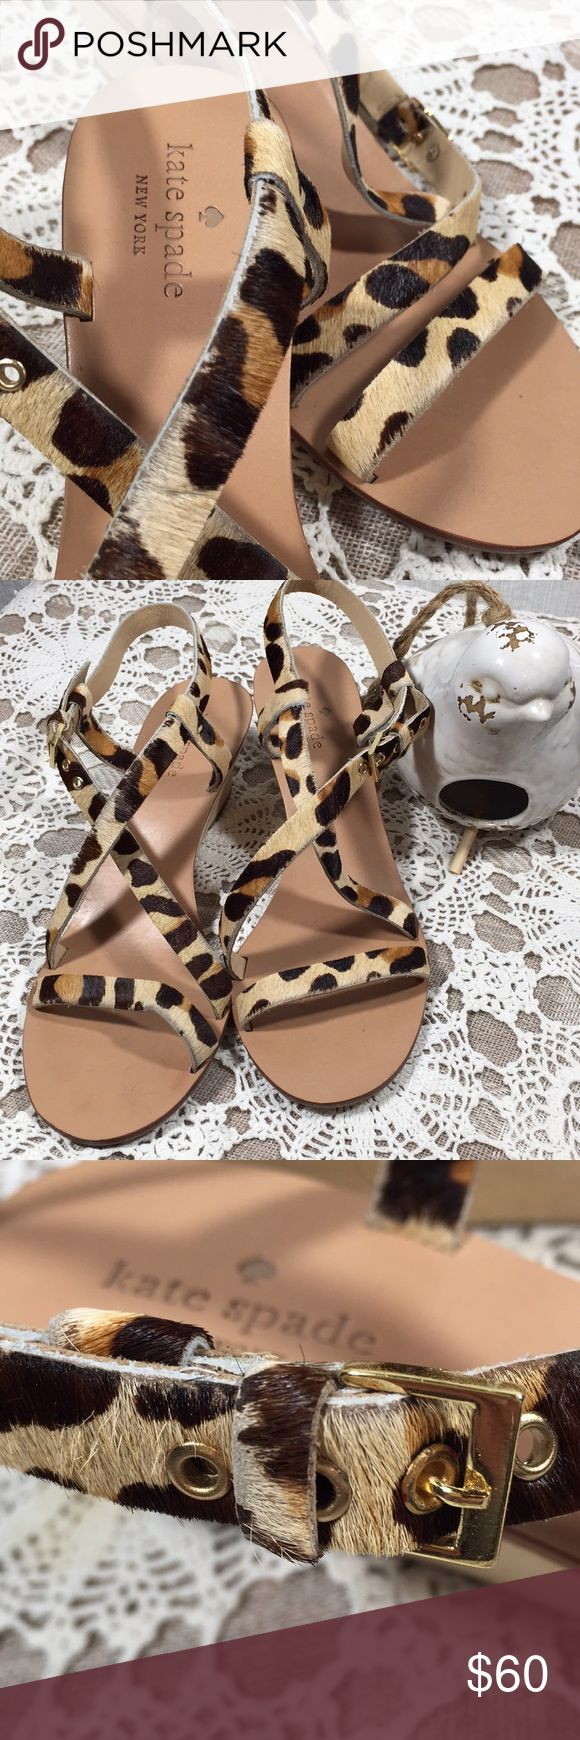 Kate Spade pony hair leopard print wedge sandals Kate Spade   Wooden wedge heel sandals with pony hair leopard print. Buckle straps. These are so fun! Size 7.5 minor signs of wear.  I ❤️ OFFERS! kate spade Shoes Wedges